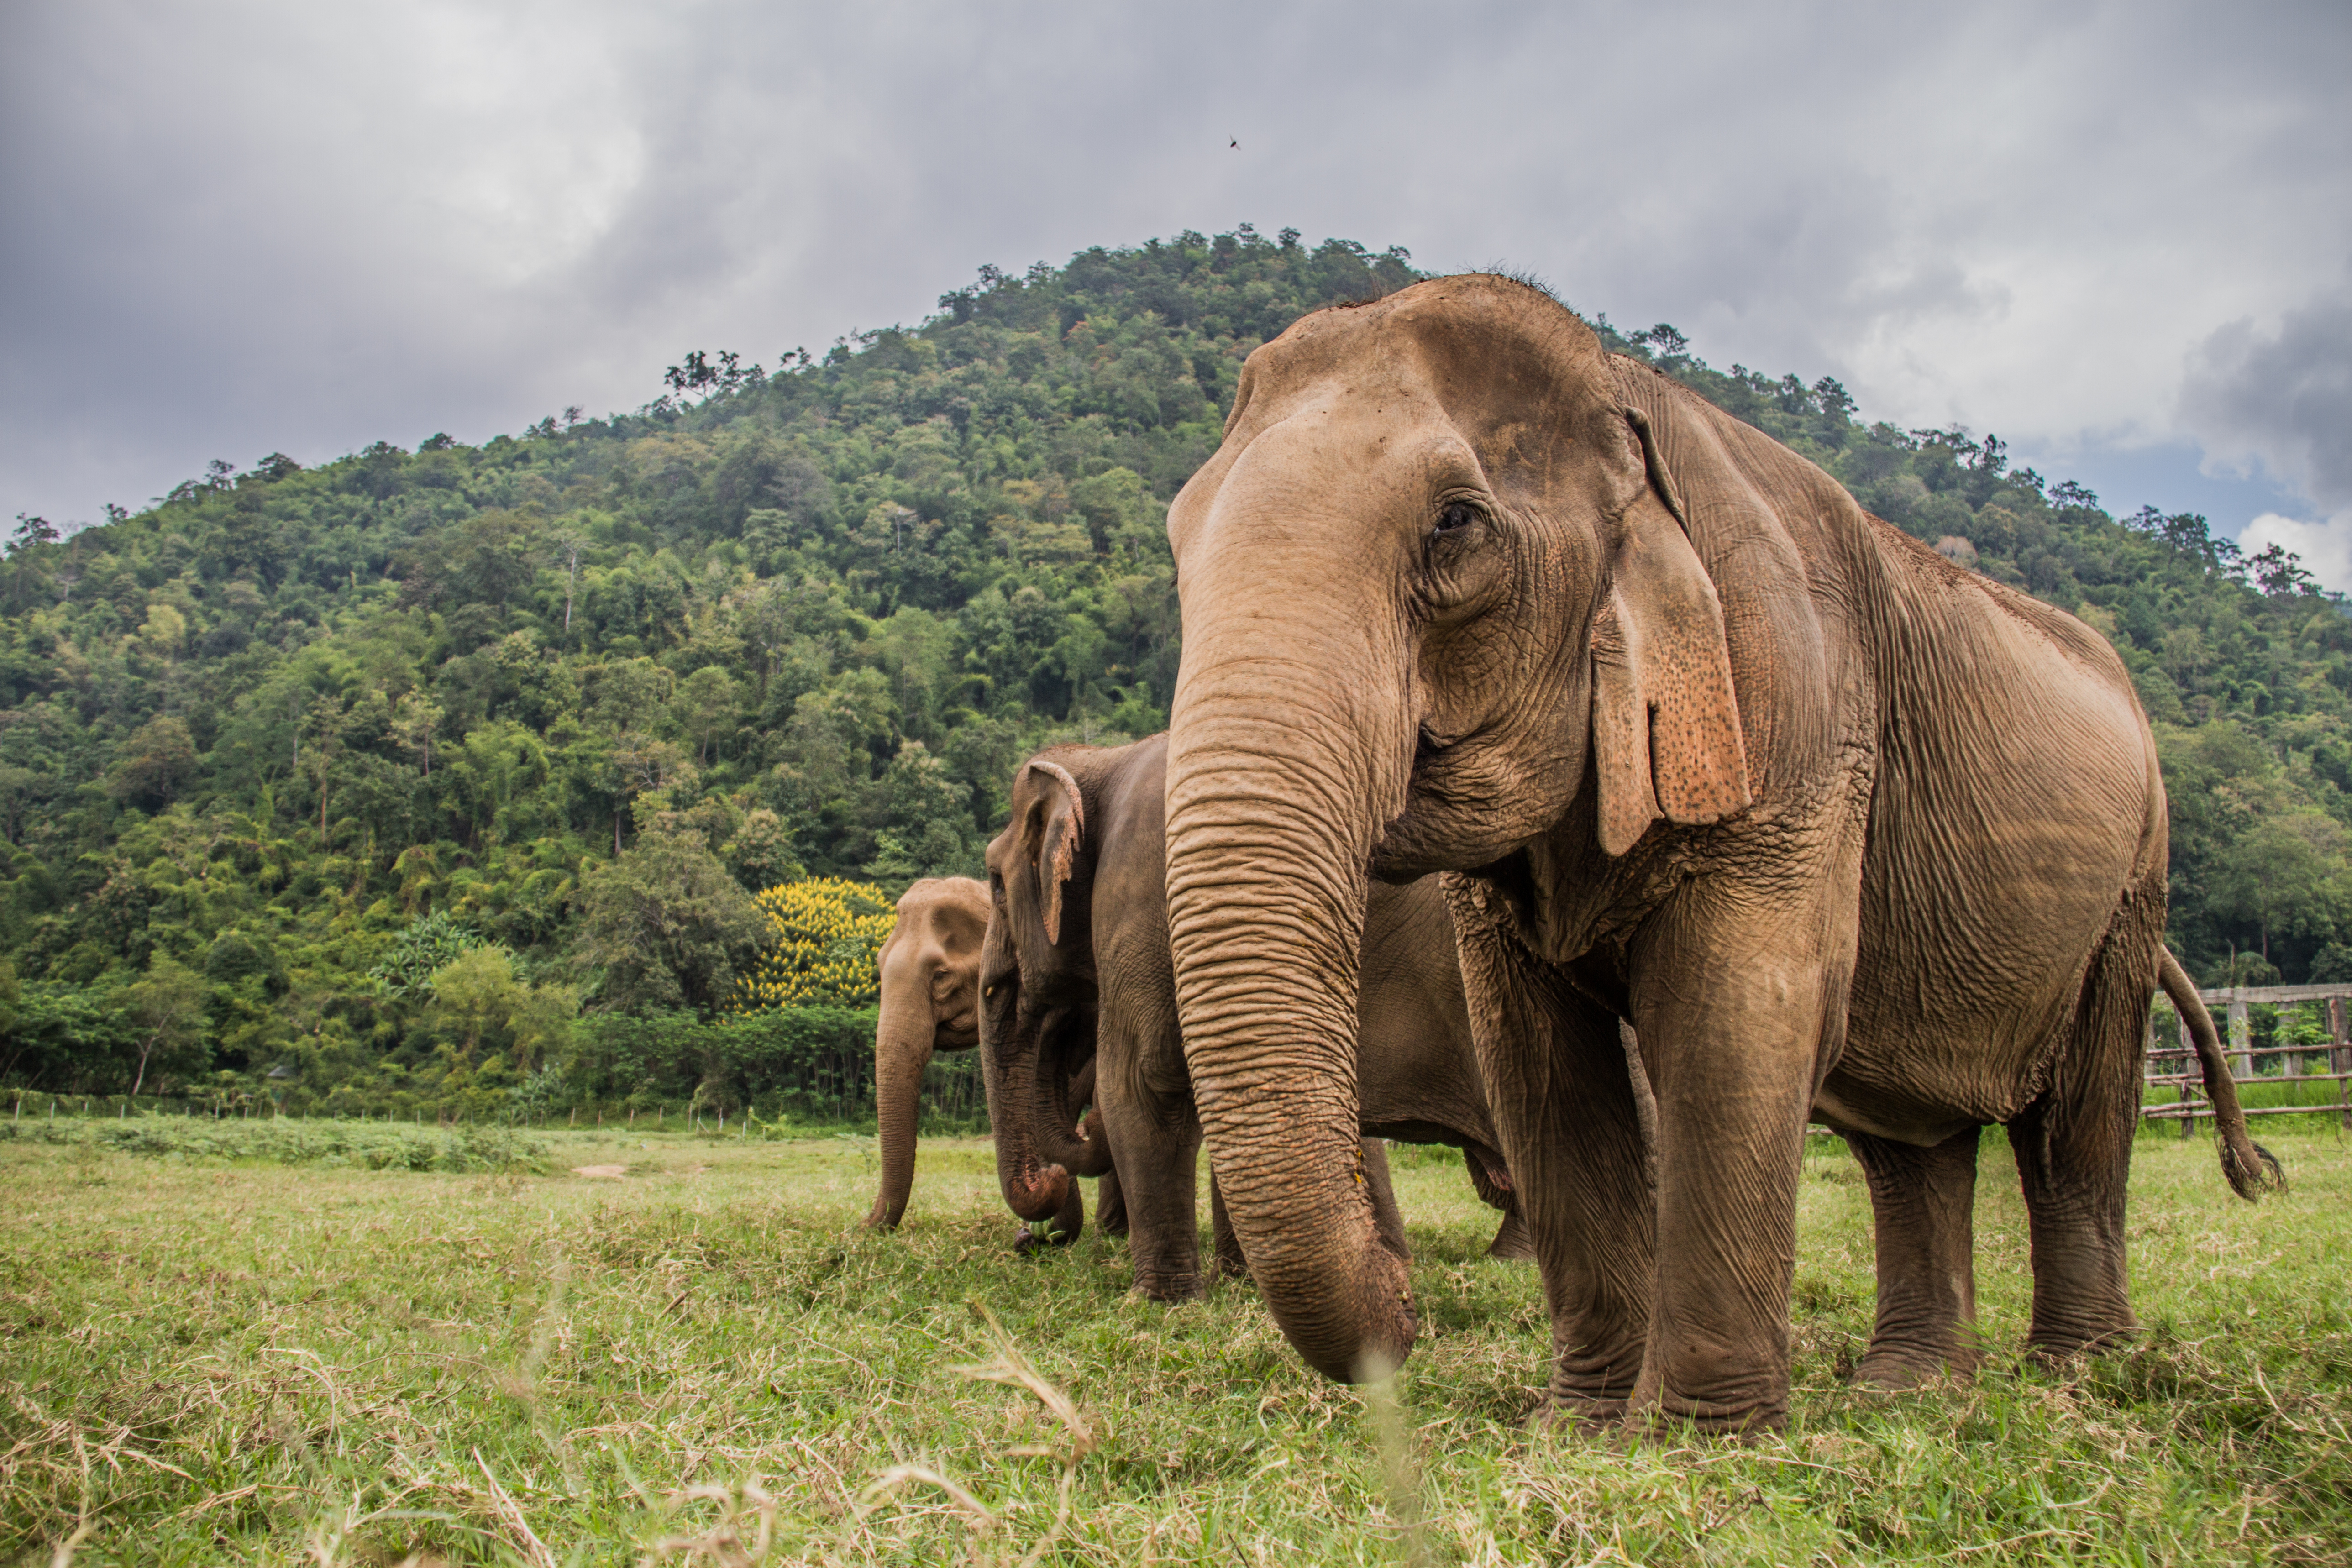 Petition: Ask the UN to Protect Asian Elephants From Being Poached for Jewelry!